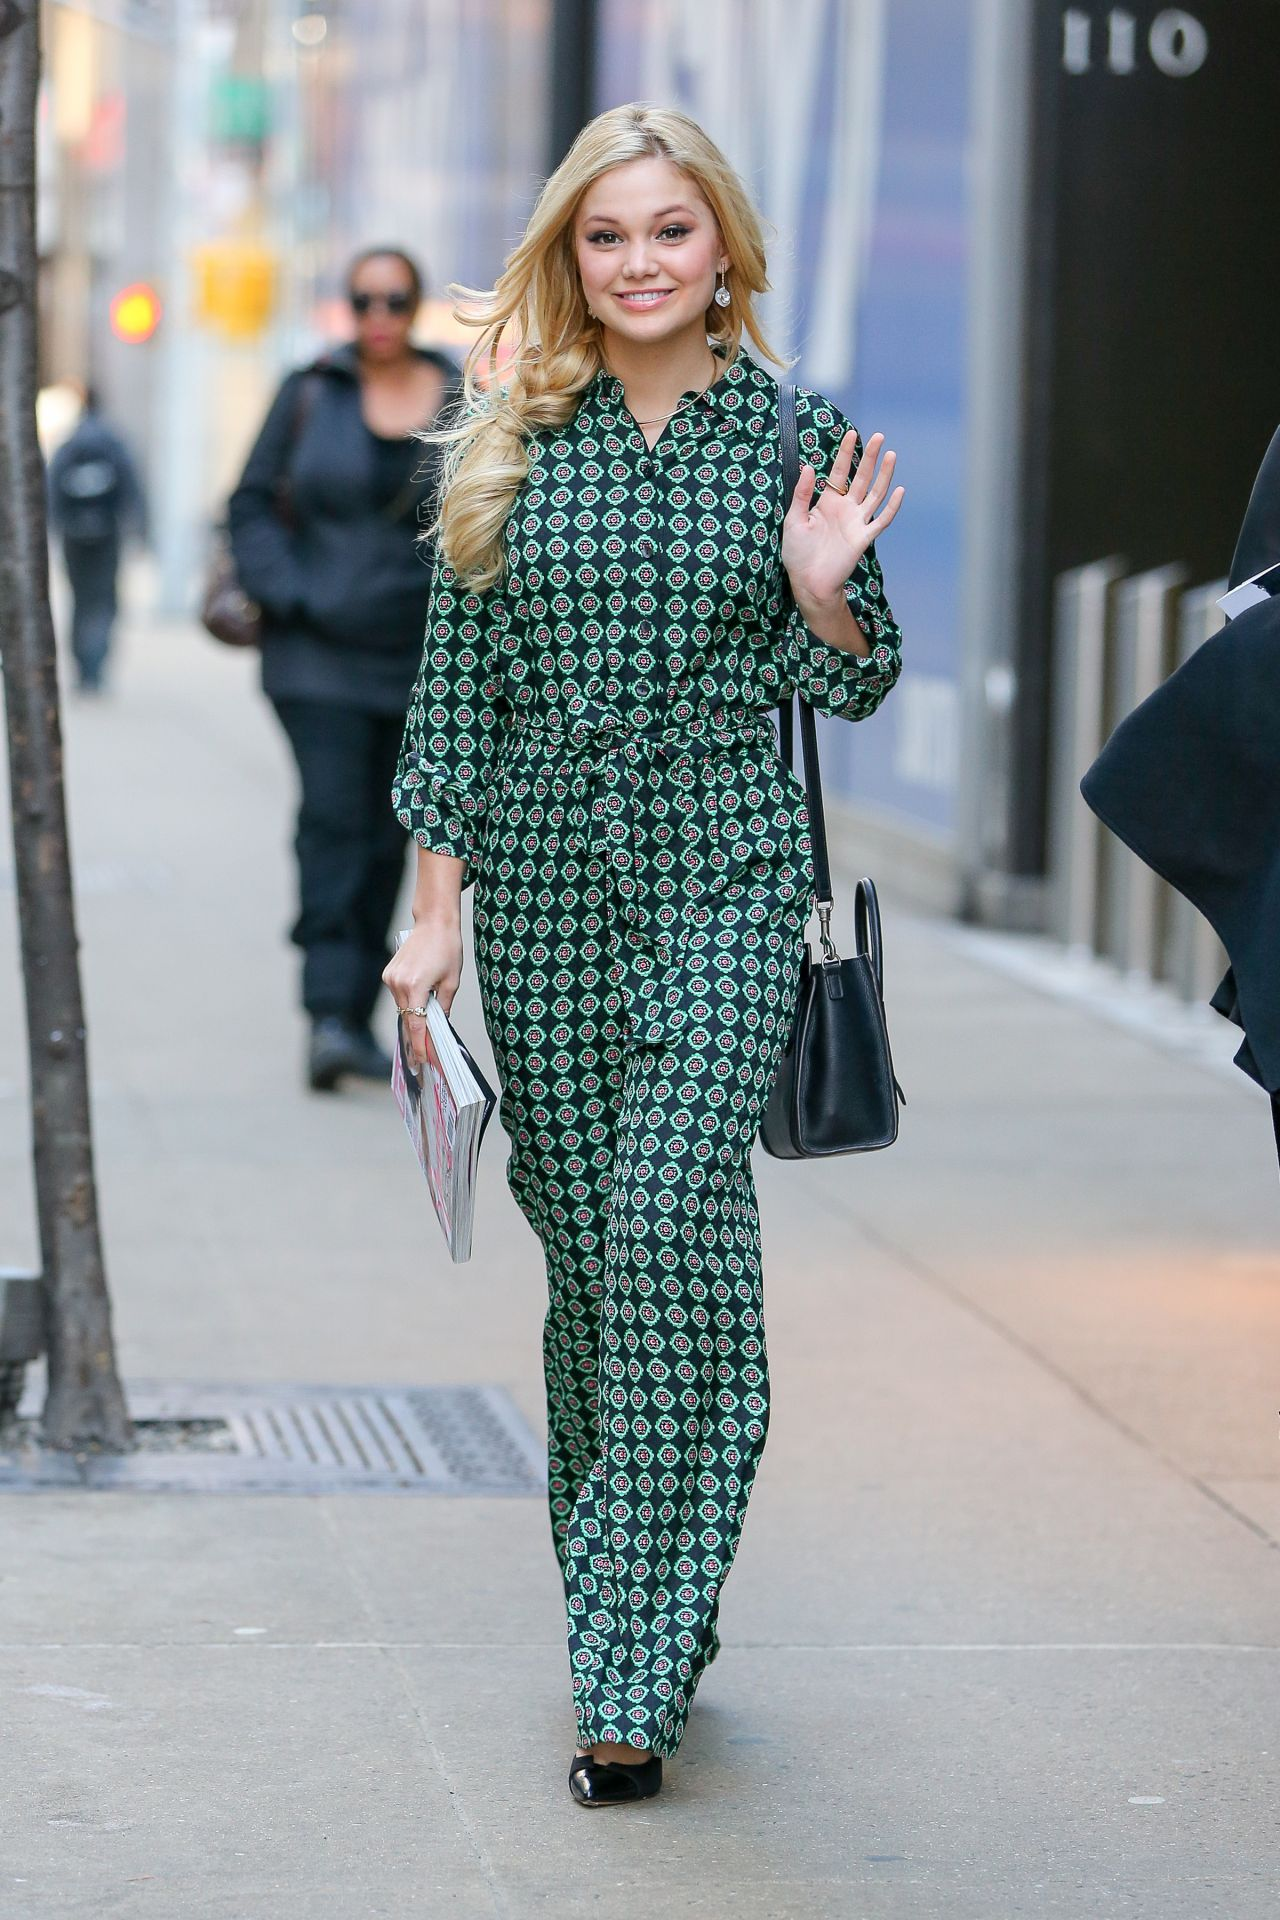 Olivia Holt Style Leaving The Instyle Offices In New